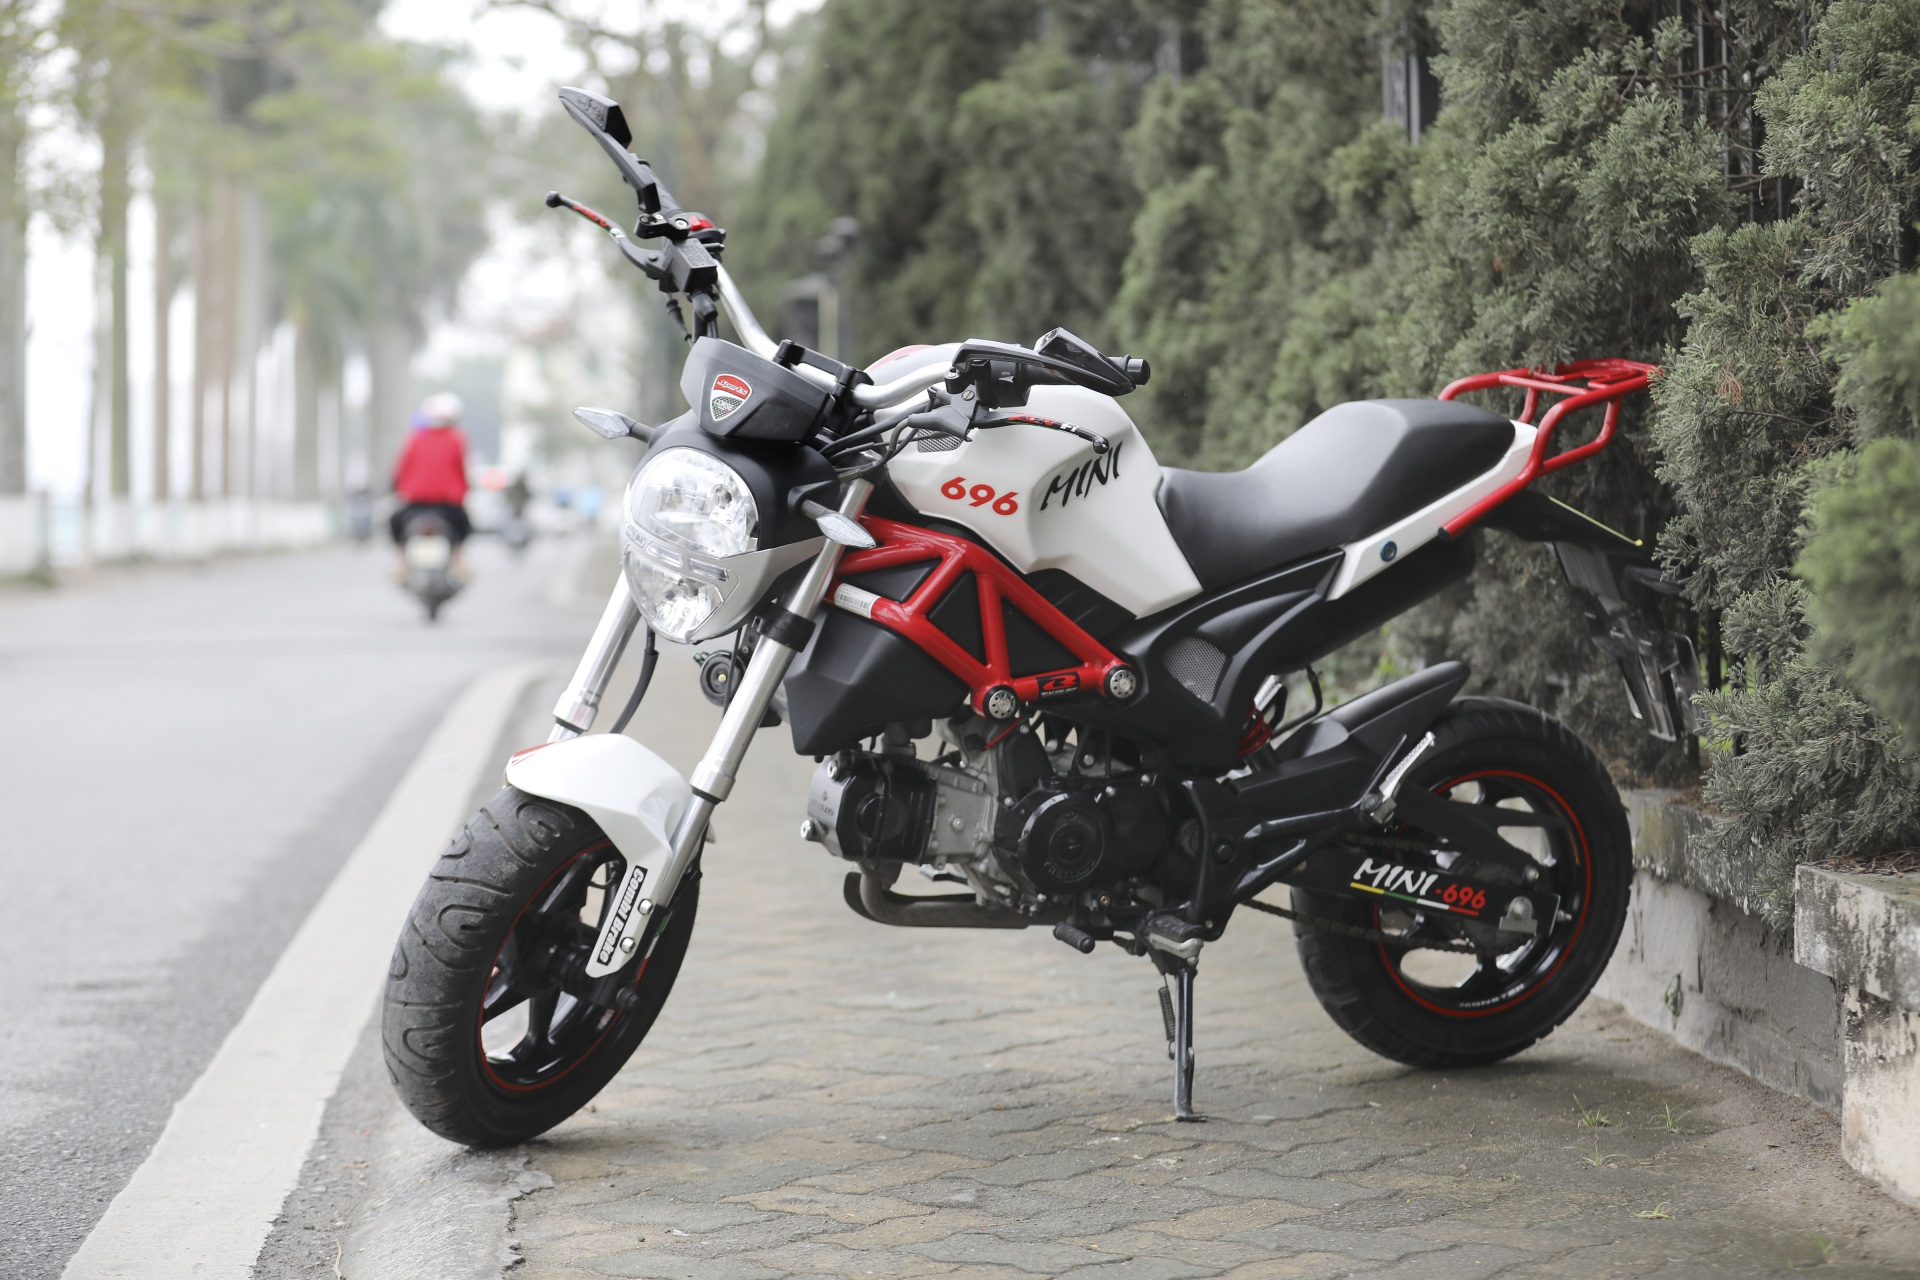 ducati-mini-monster-110-anh-ca-chep-6